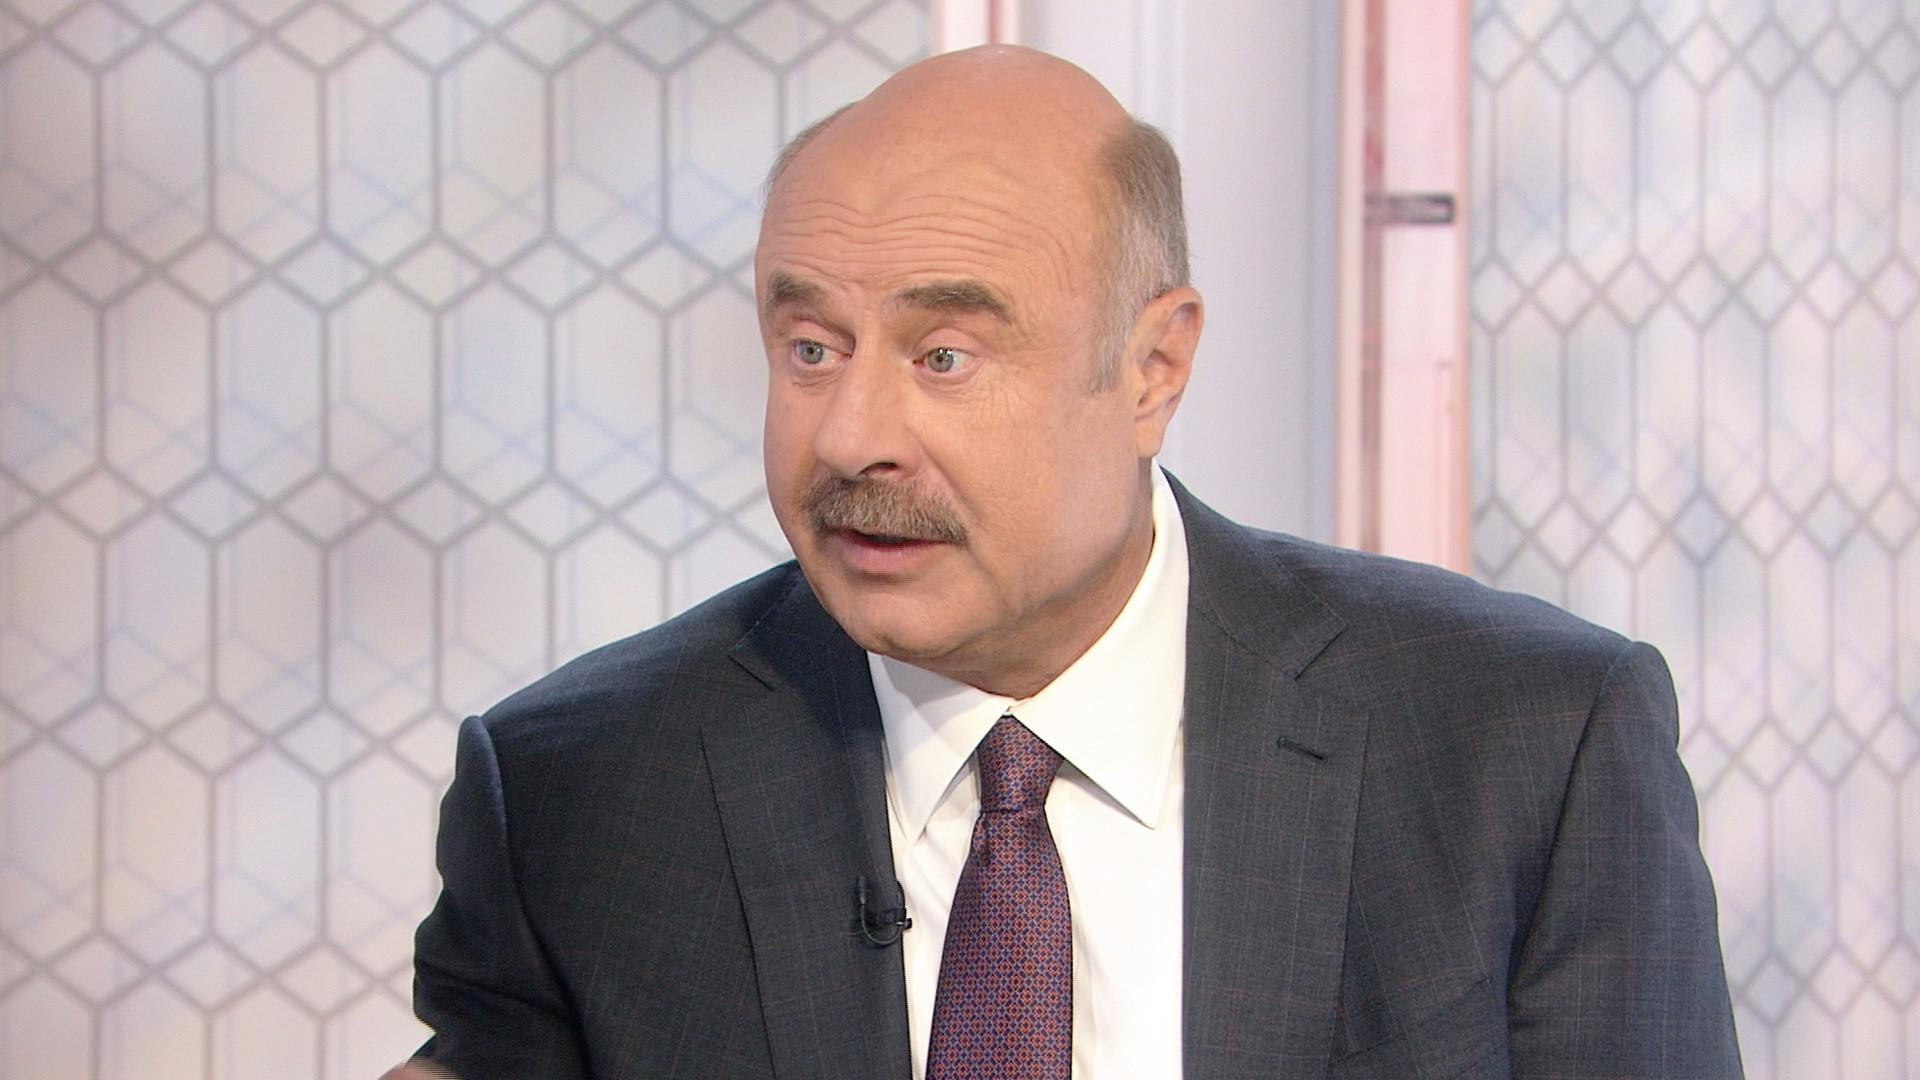 Dr phil catfish dating scams